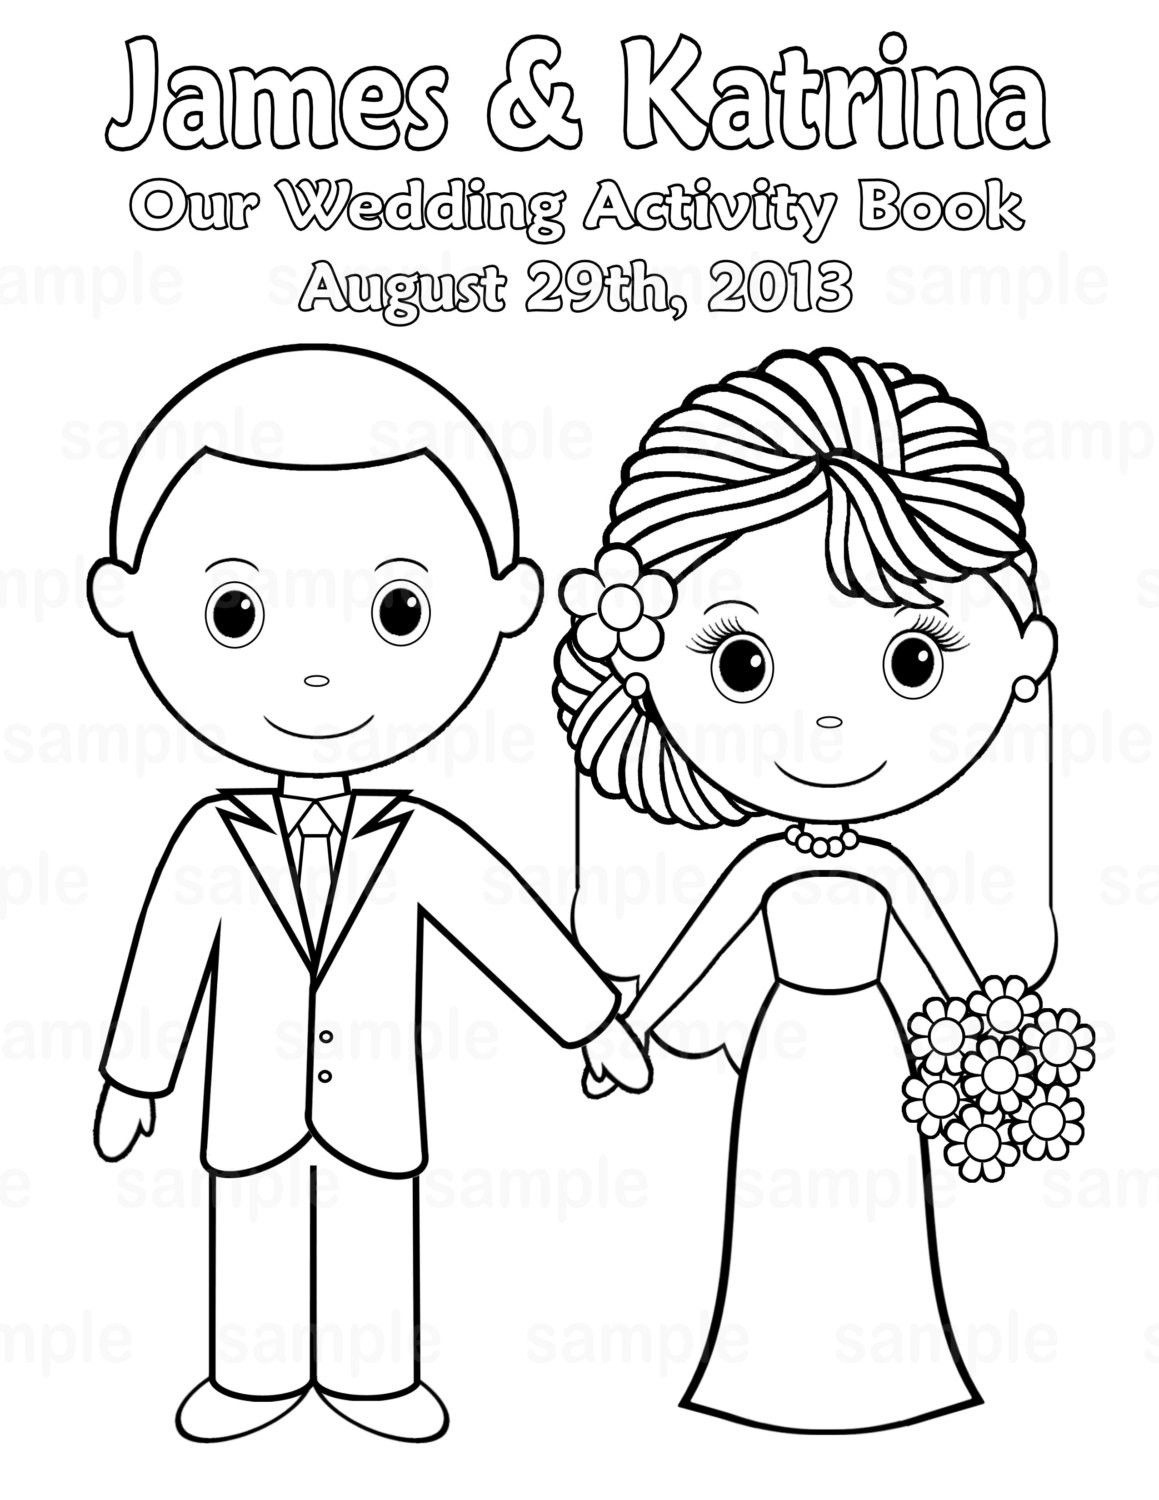 Free Printable Wedding Coloring Pages   Free Printable Wedding - Free Printable Personalized Wedding Coloring Book